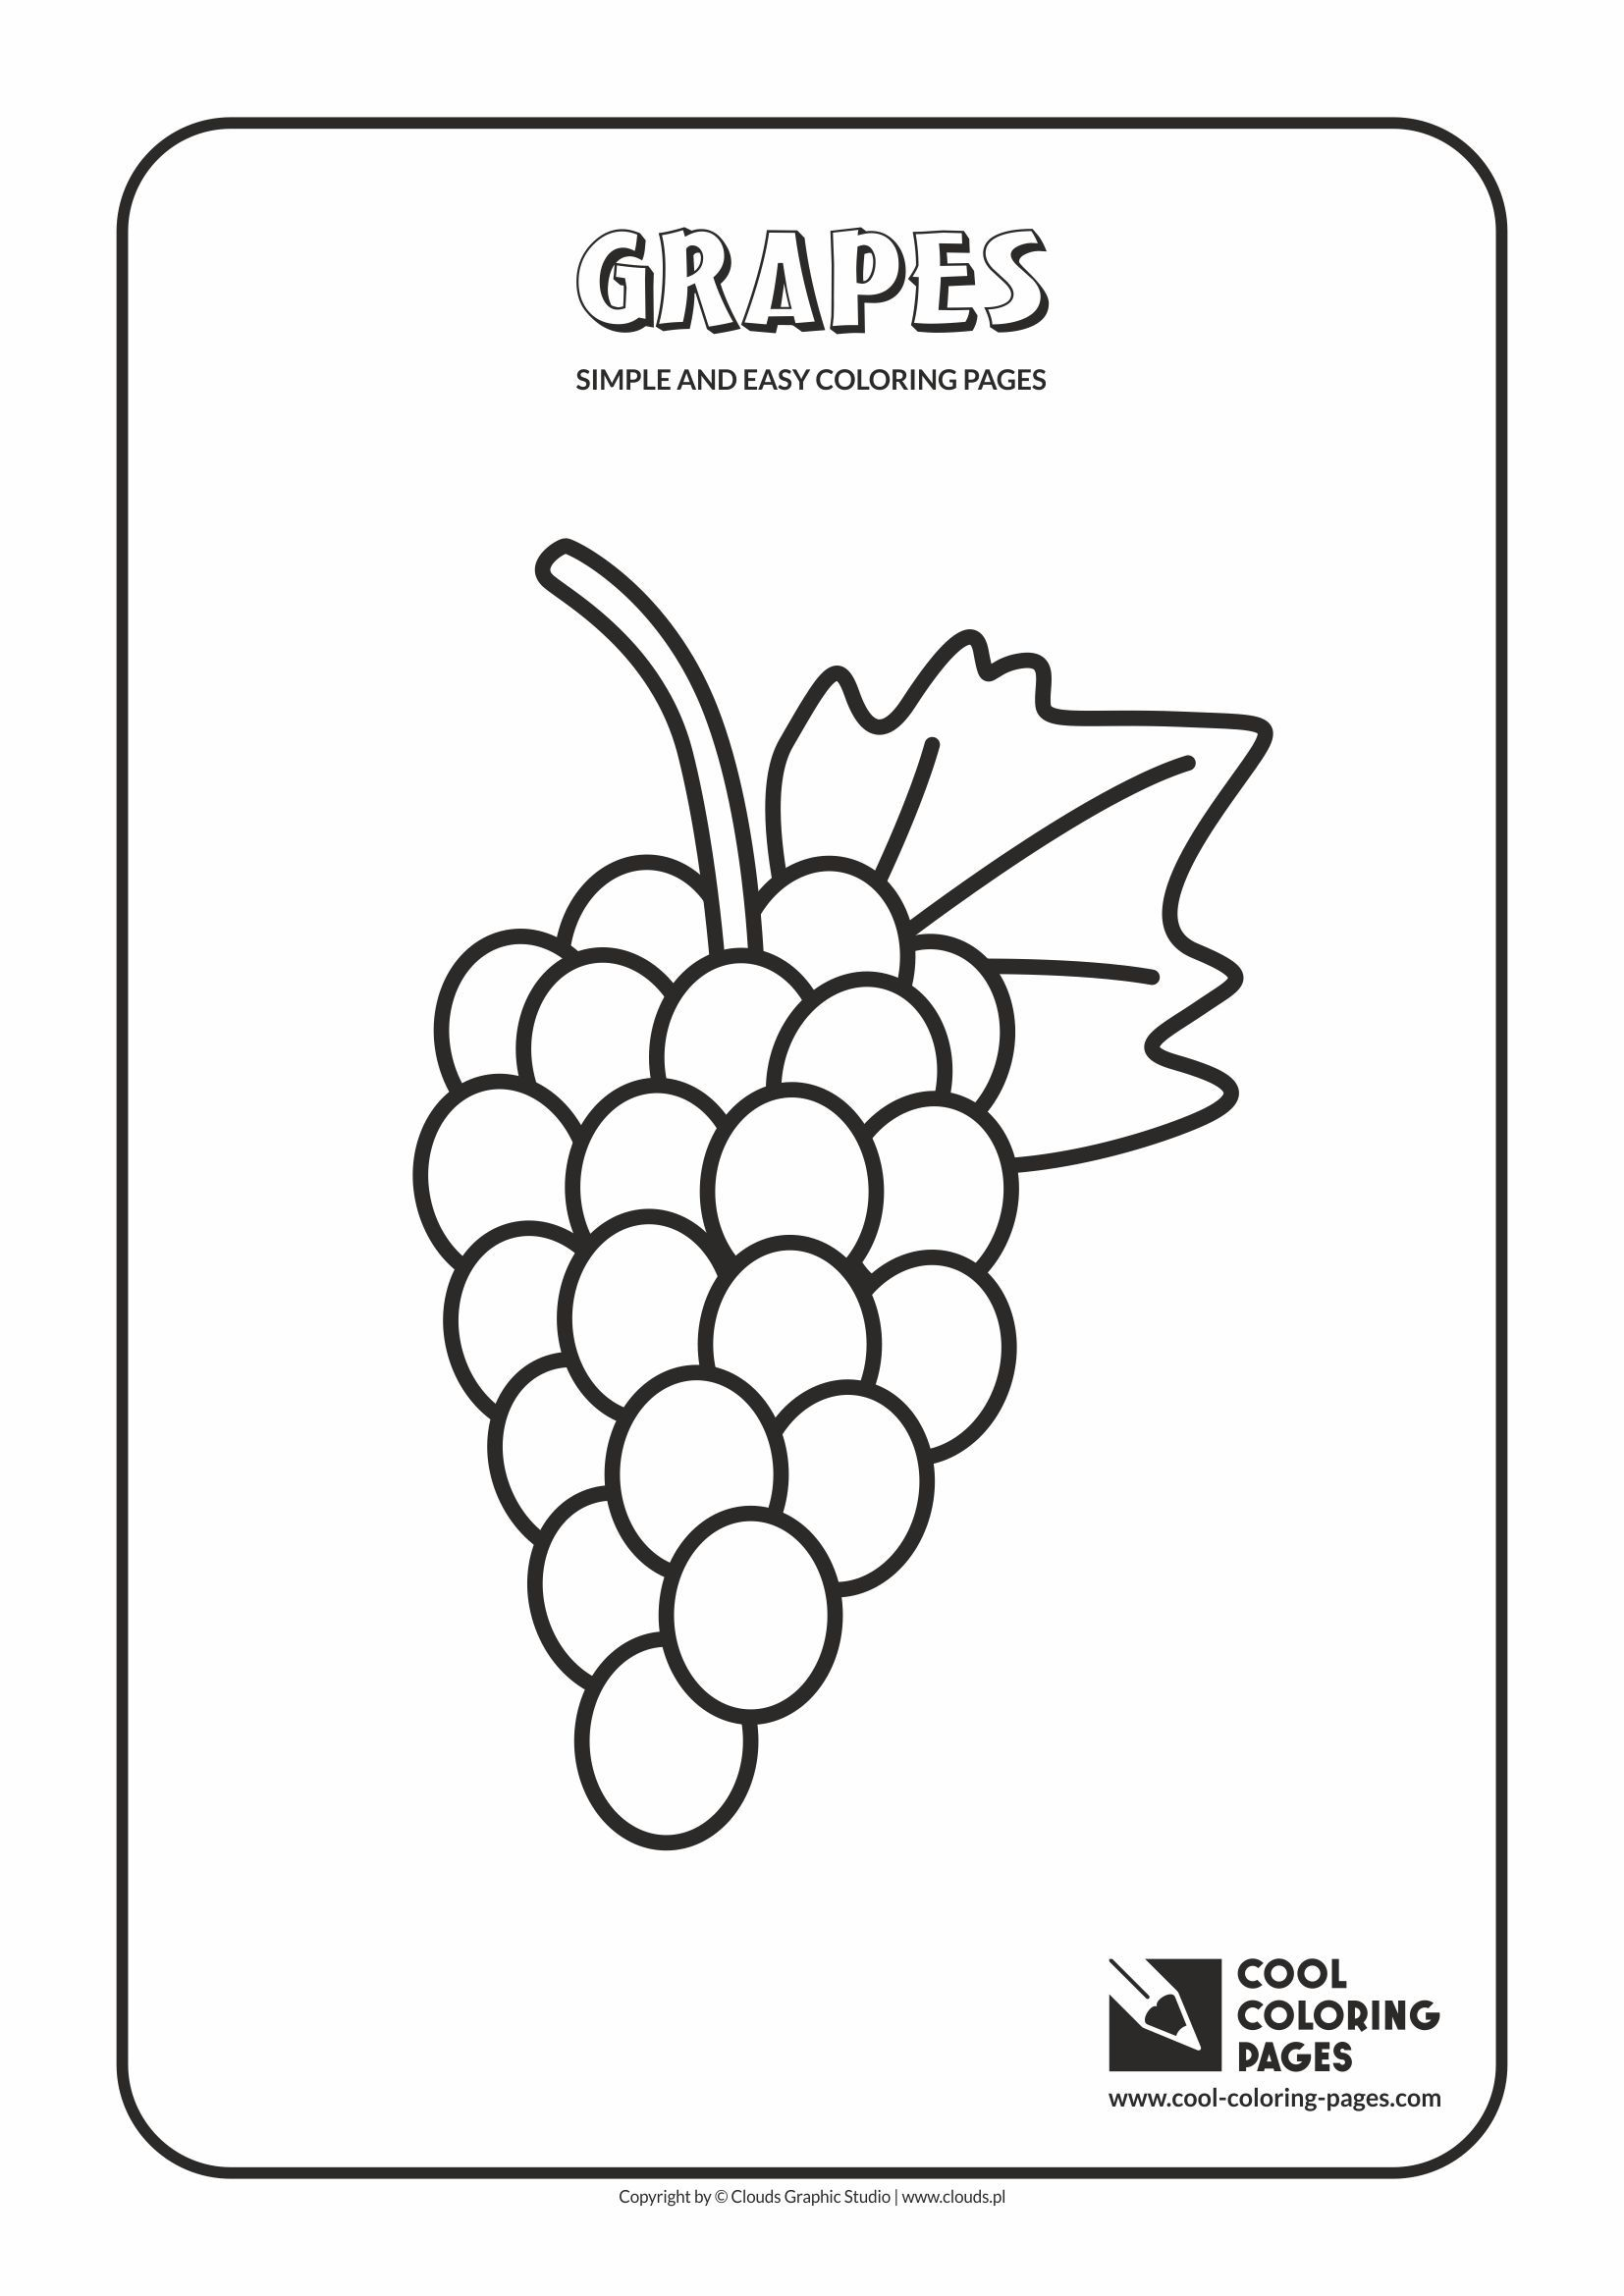 Simple and easy coloring pages for toddlers - Grapes | Preschool ...